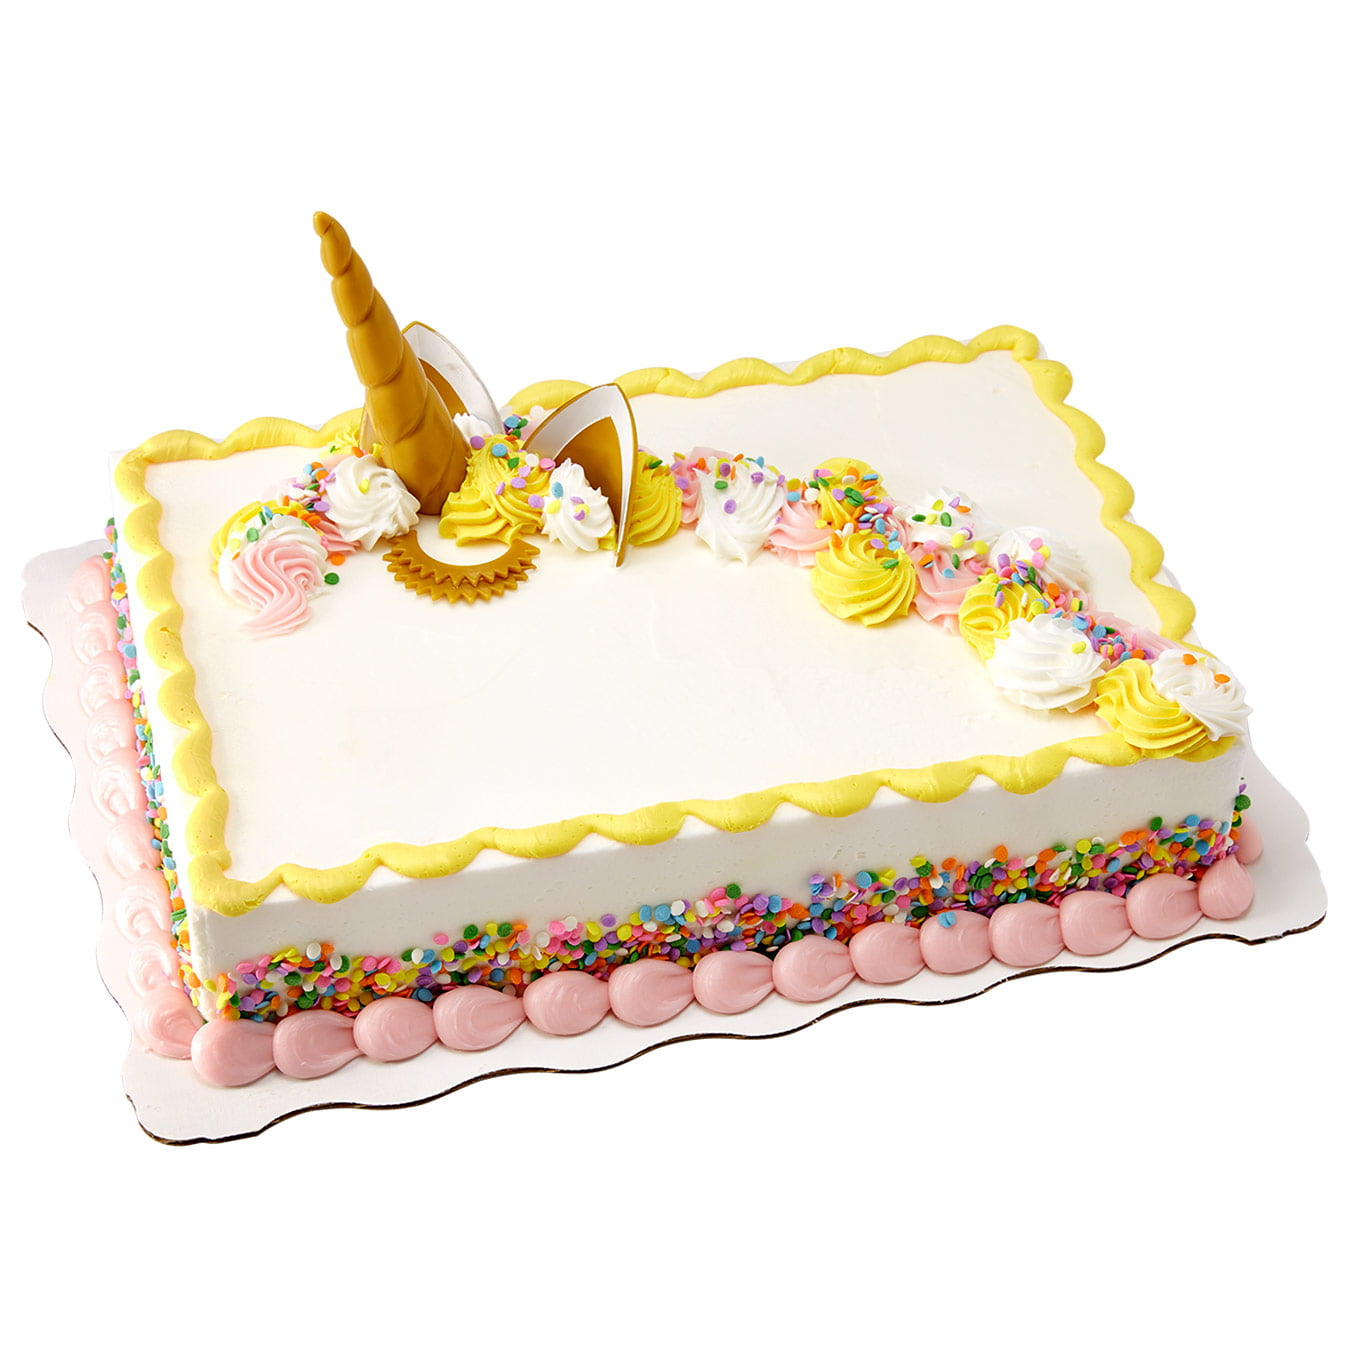 Magnificent Unicorn Kit Cake Walmart Com Walmart Com Personalised Birthday Cards Paralily Jamesorg